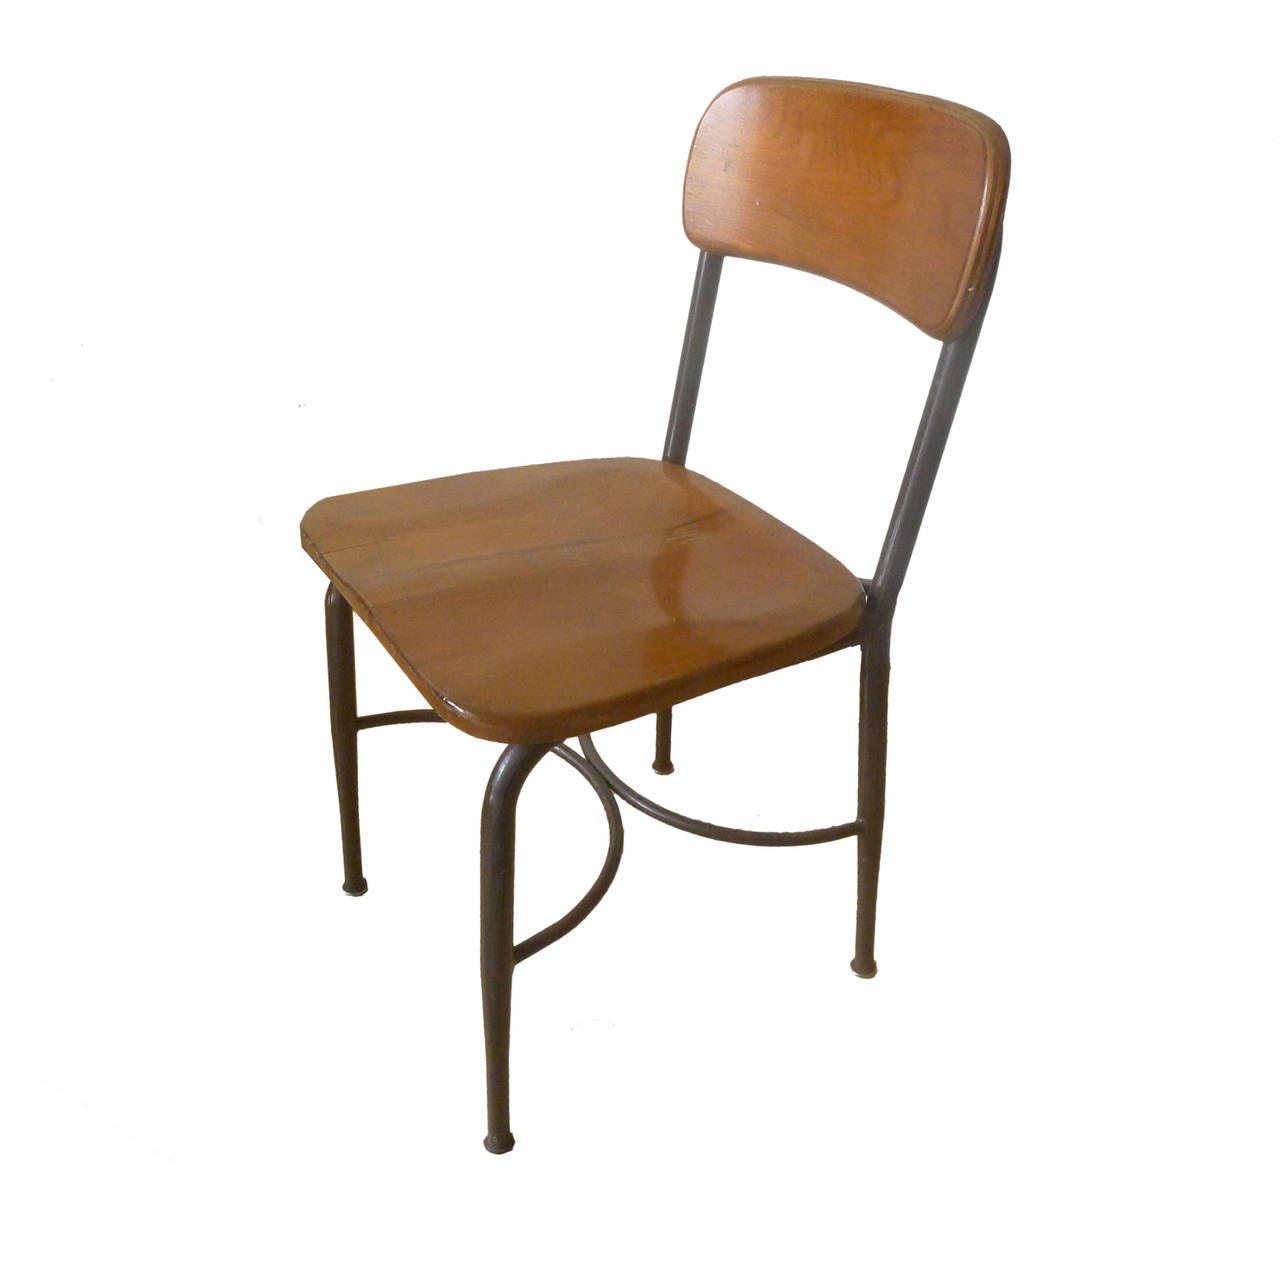 heywood wakefield chairs victoria ghost chair 8 adult sized vintage metal and maple